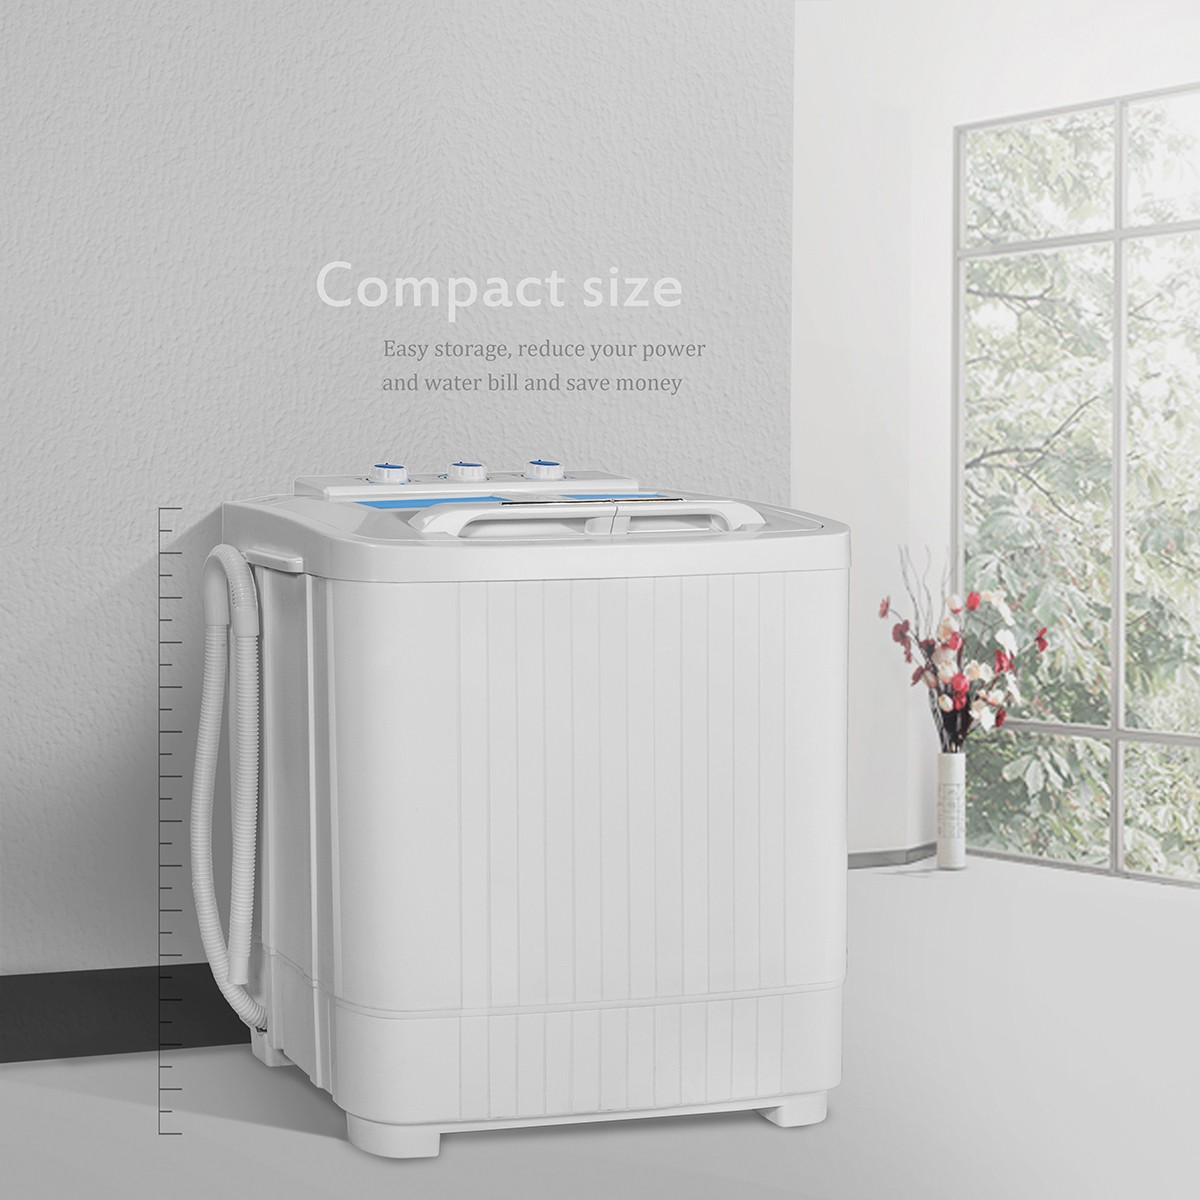 9LB MINI Washer & Spin Dryer Portable Compact Laundry Combo RV